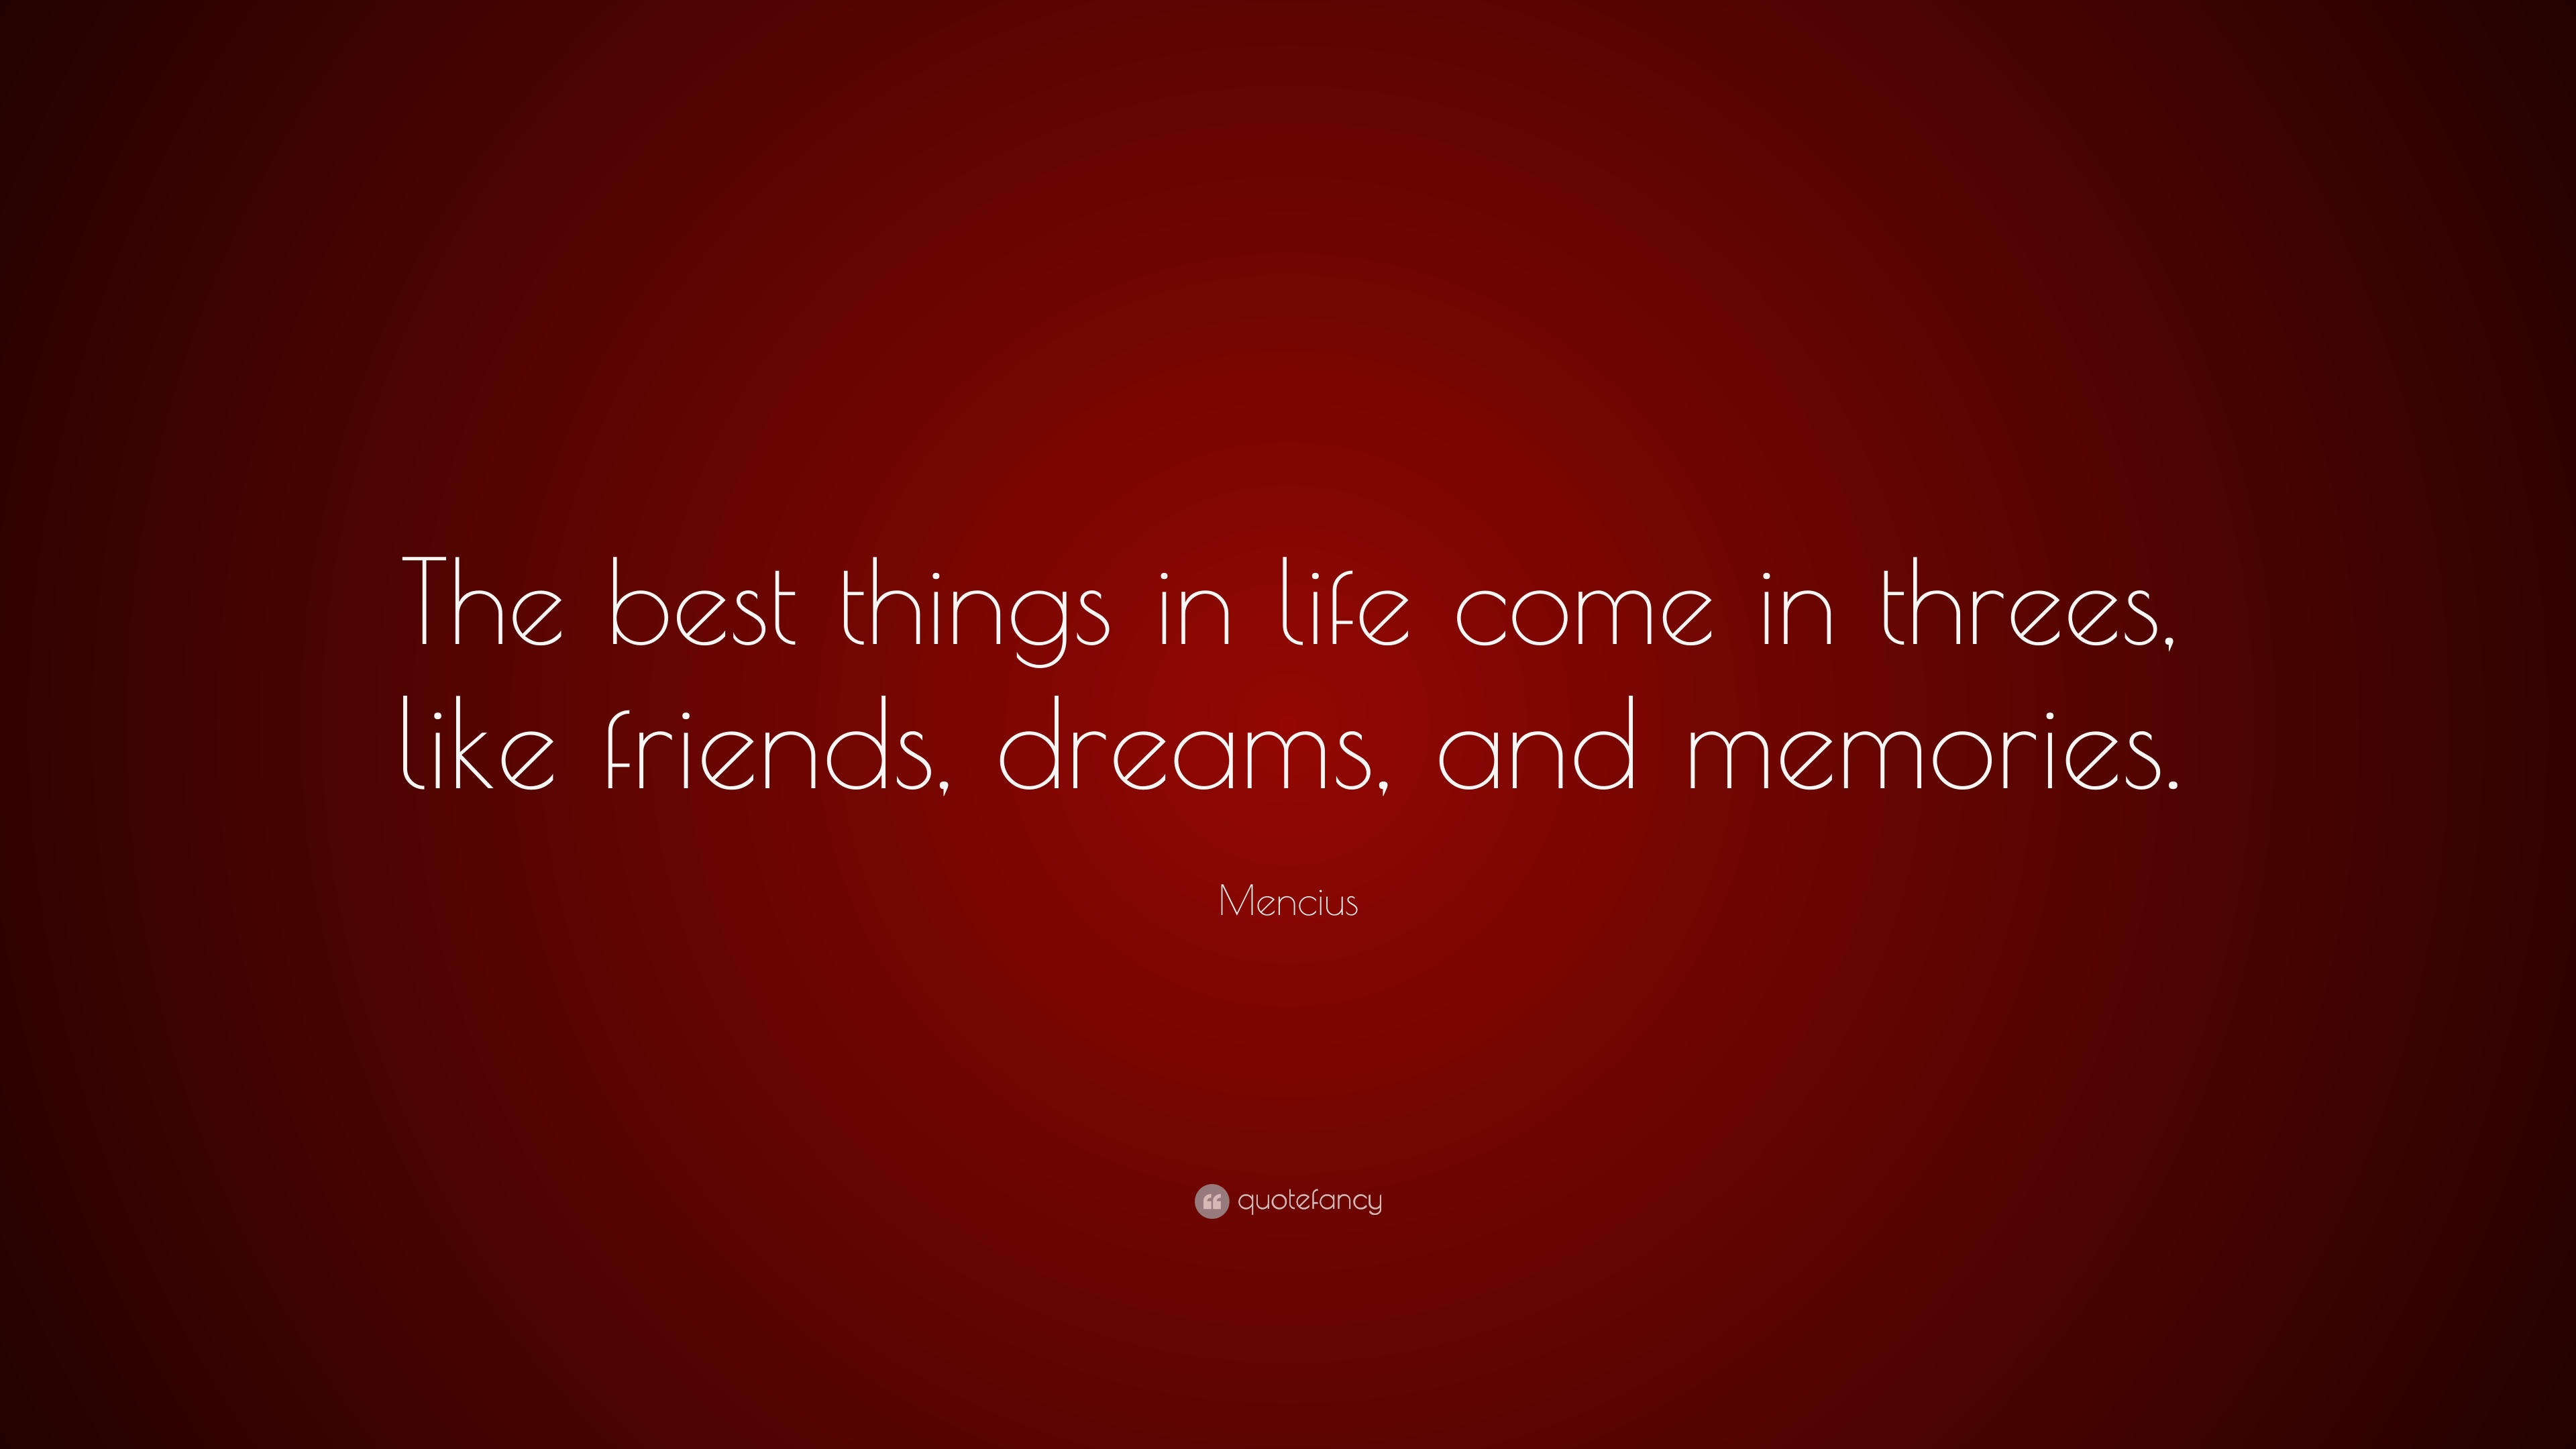 mencius quote the best things in life come in threes like friends